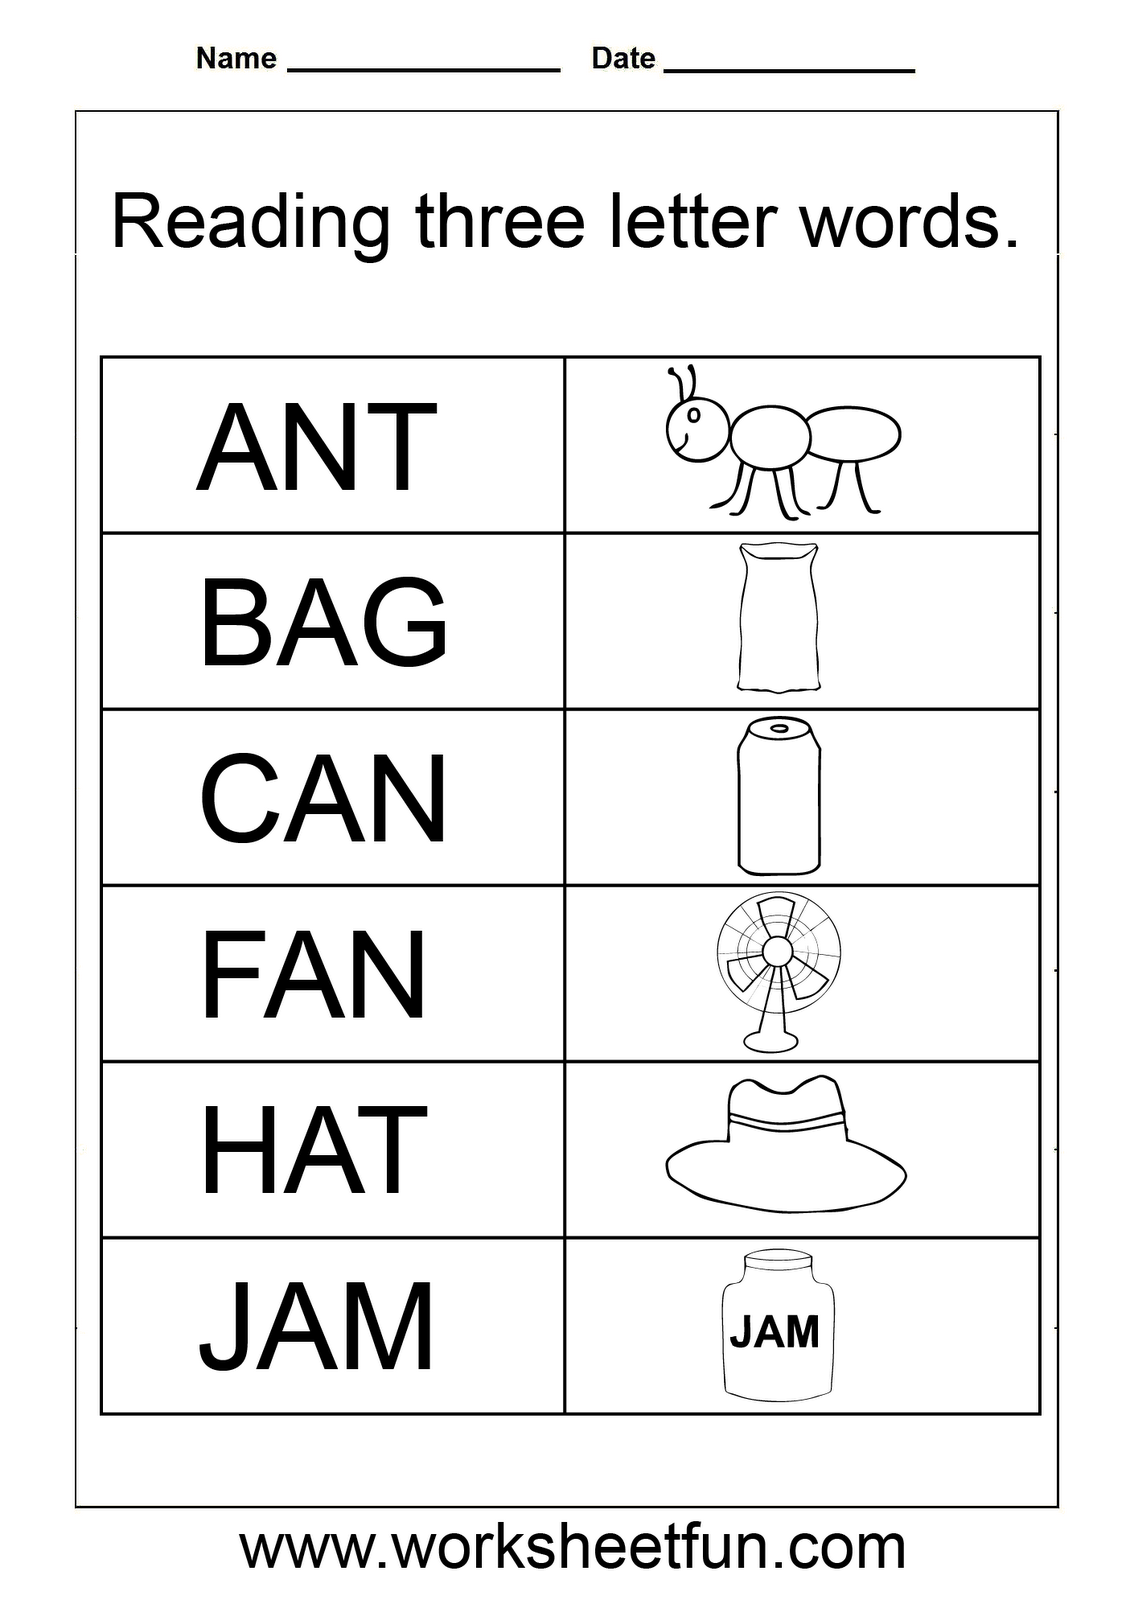 Image Result For Nursery Spelling Worksheets